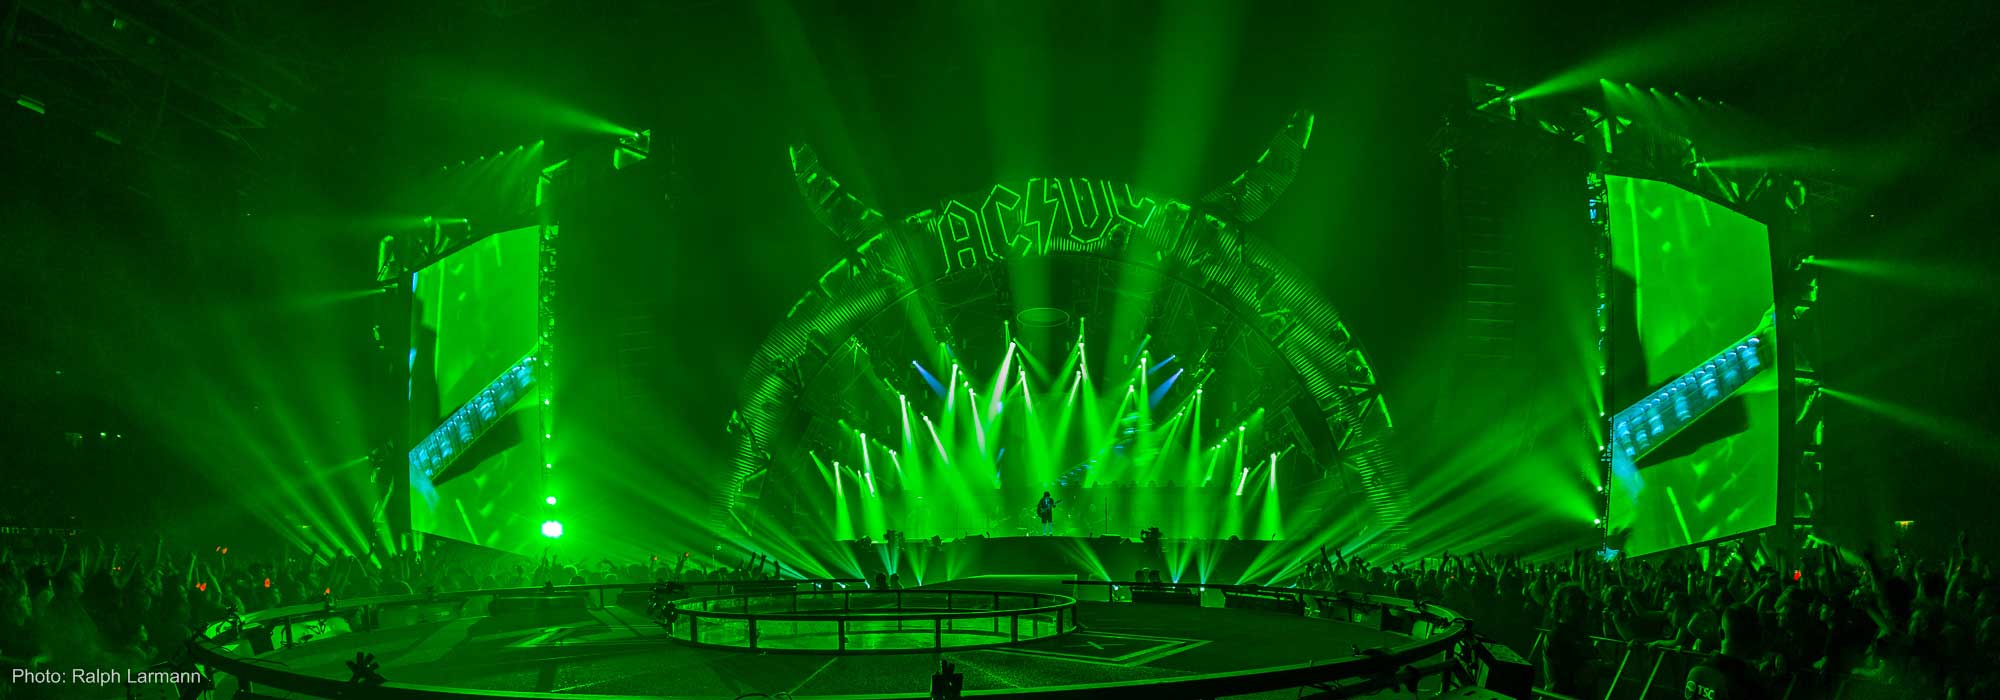 On Stage with Patrick Woodroffe - Philips Lighting